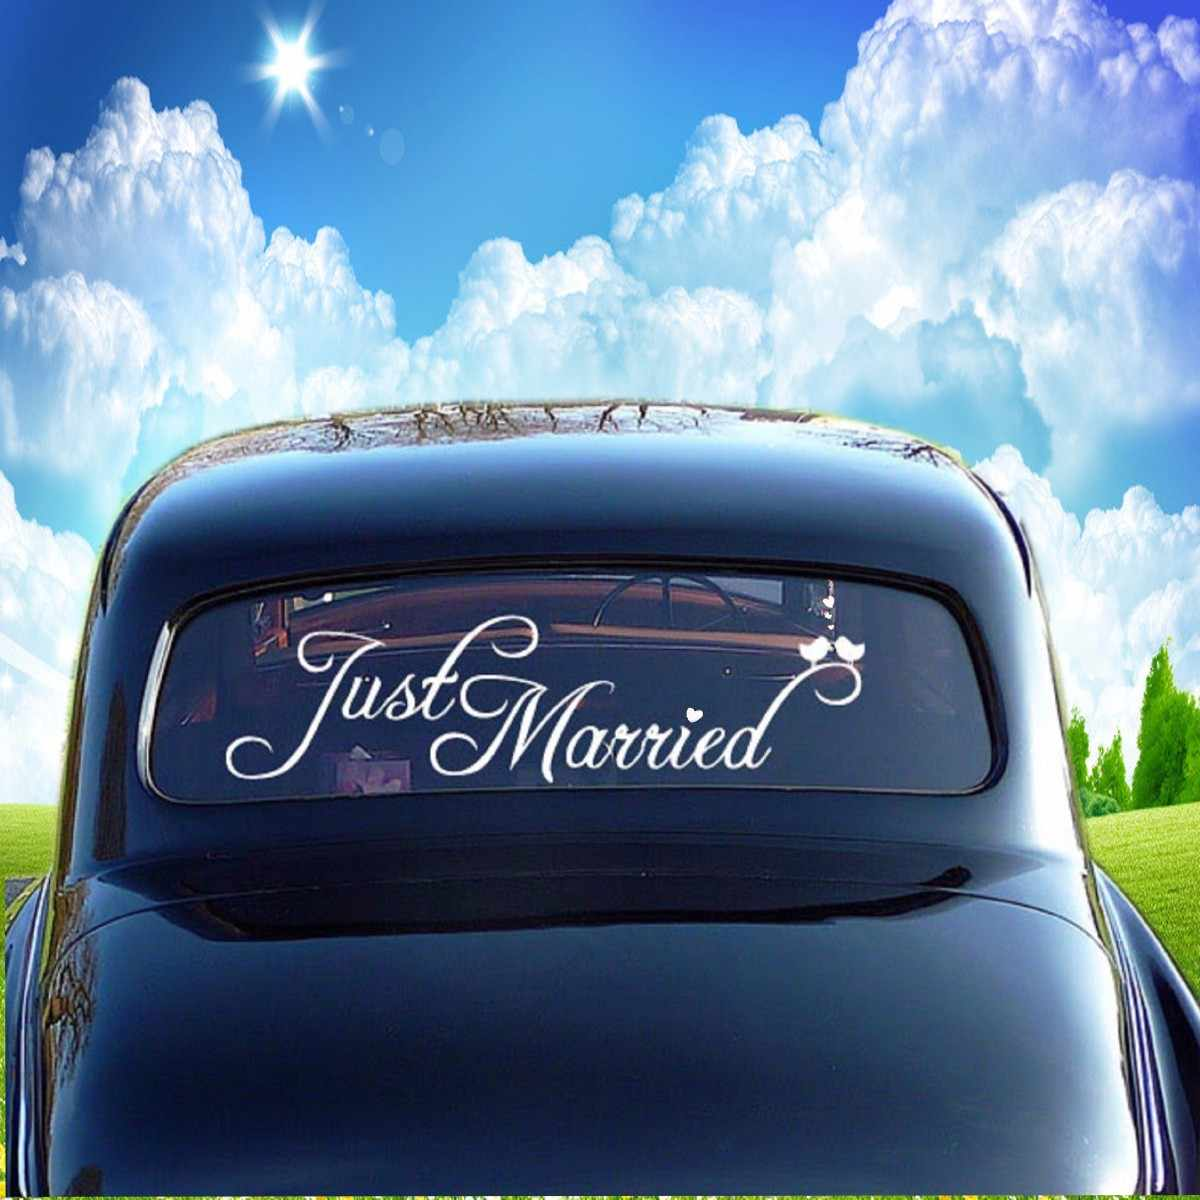 Just Married Wedding Car Finestra Banner PVC Impermeabile Autoadesivo Della Decalcomania Del Vinile Personalizzato Decorazione Auto Decorazione Forniture di Nozze